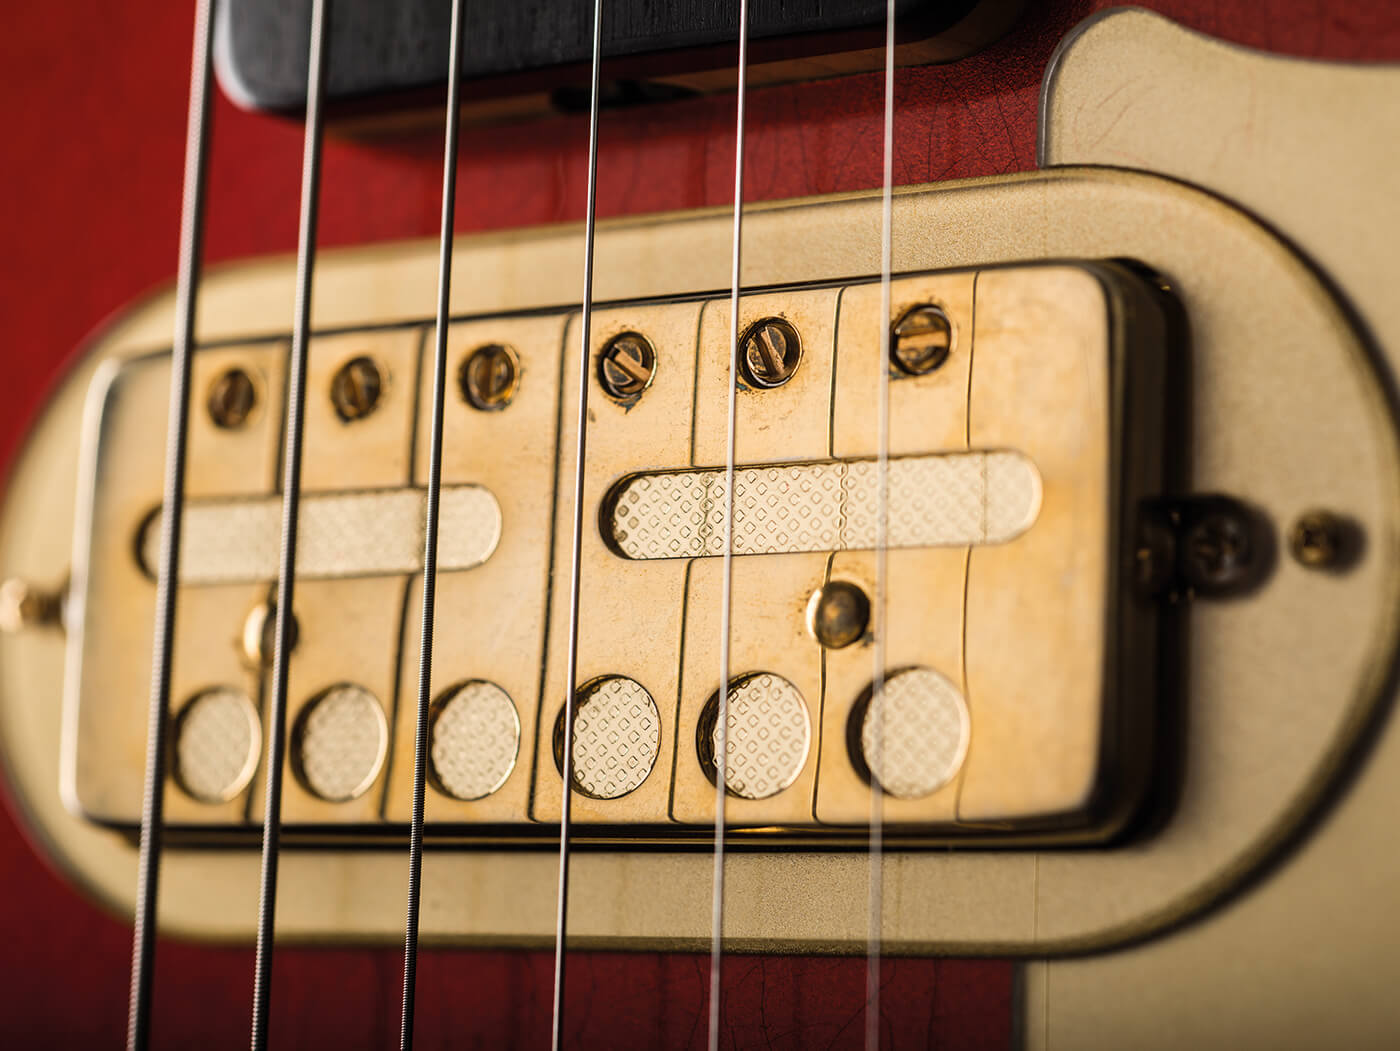 hight resolution of even telecaster die hards will sometimes admit that the stock neck pickup is not the model s crowning glory by the mid 50s players had already begun